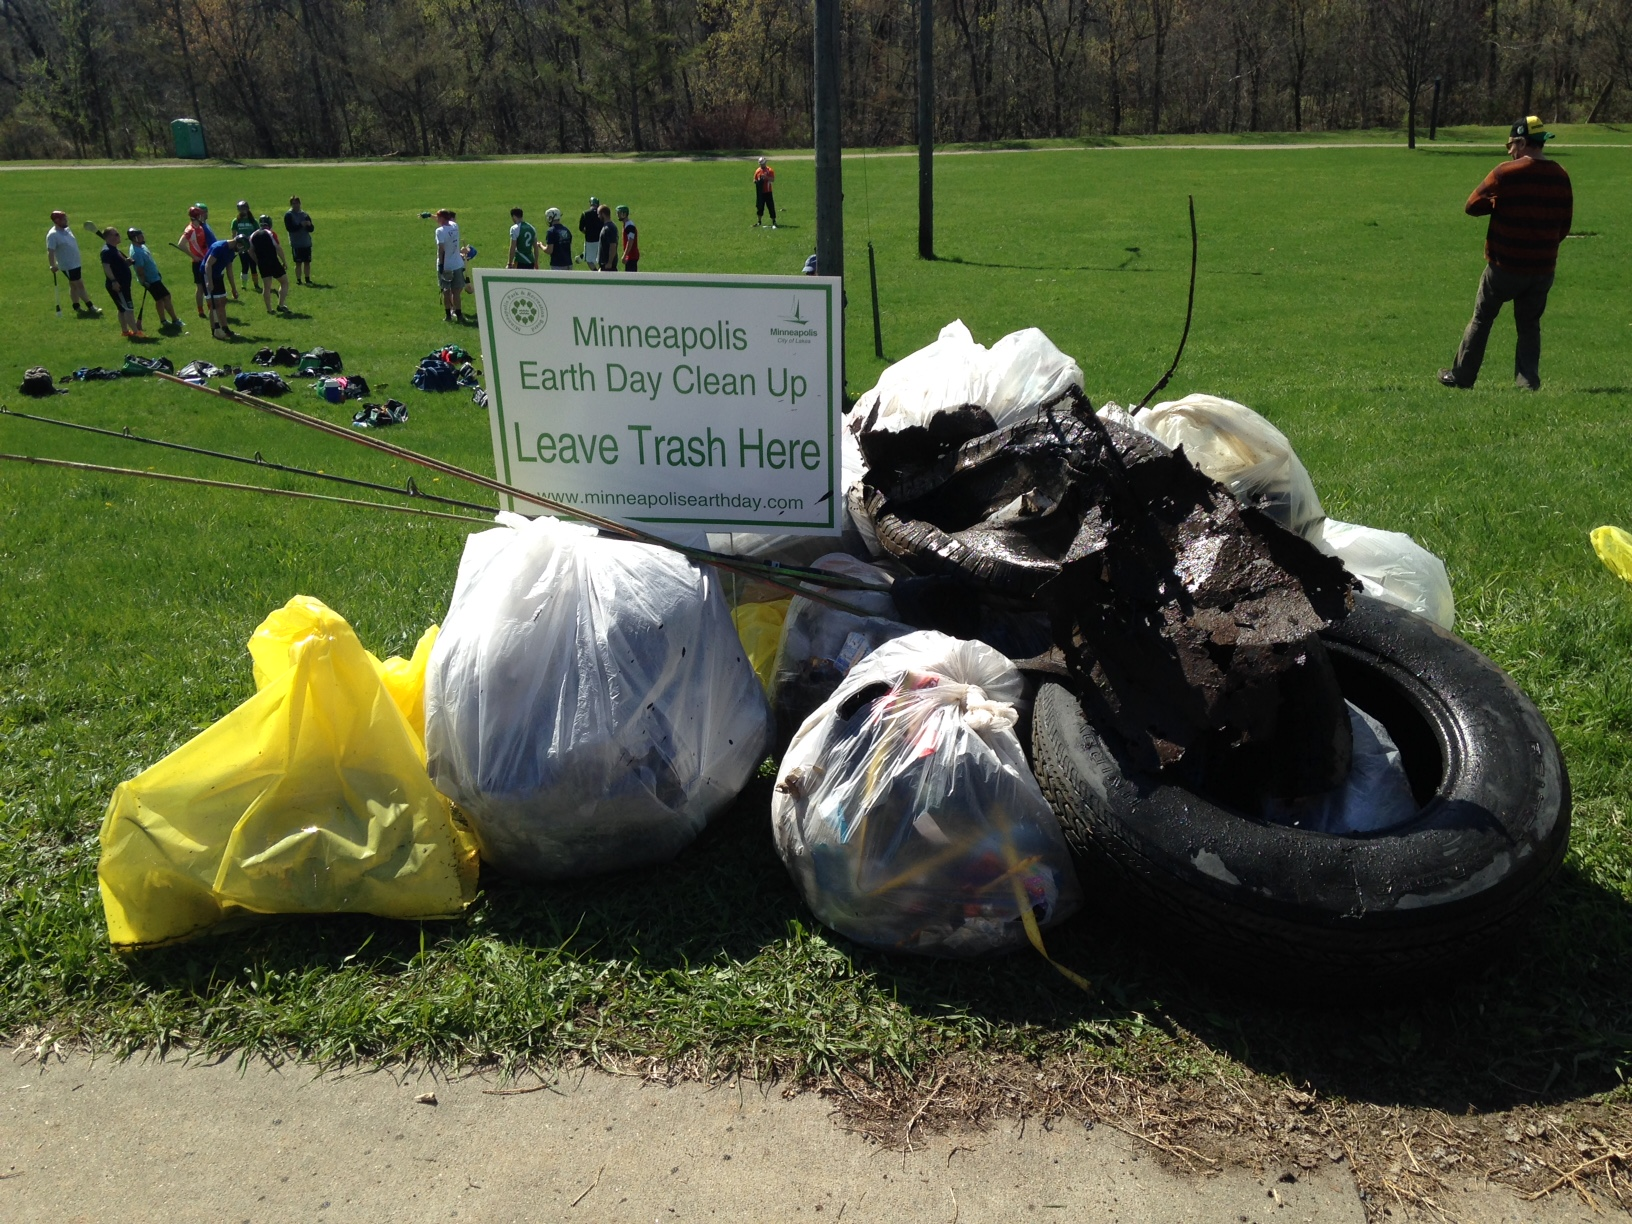 Minnesota Earth Day Cleanup